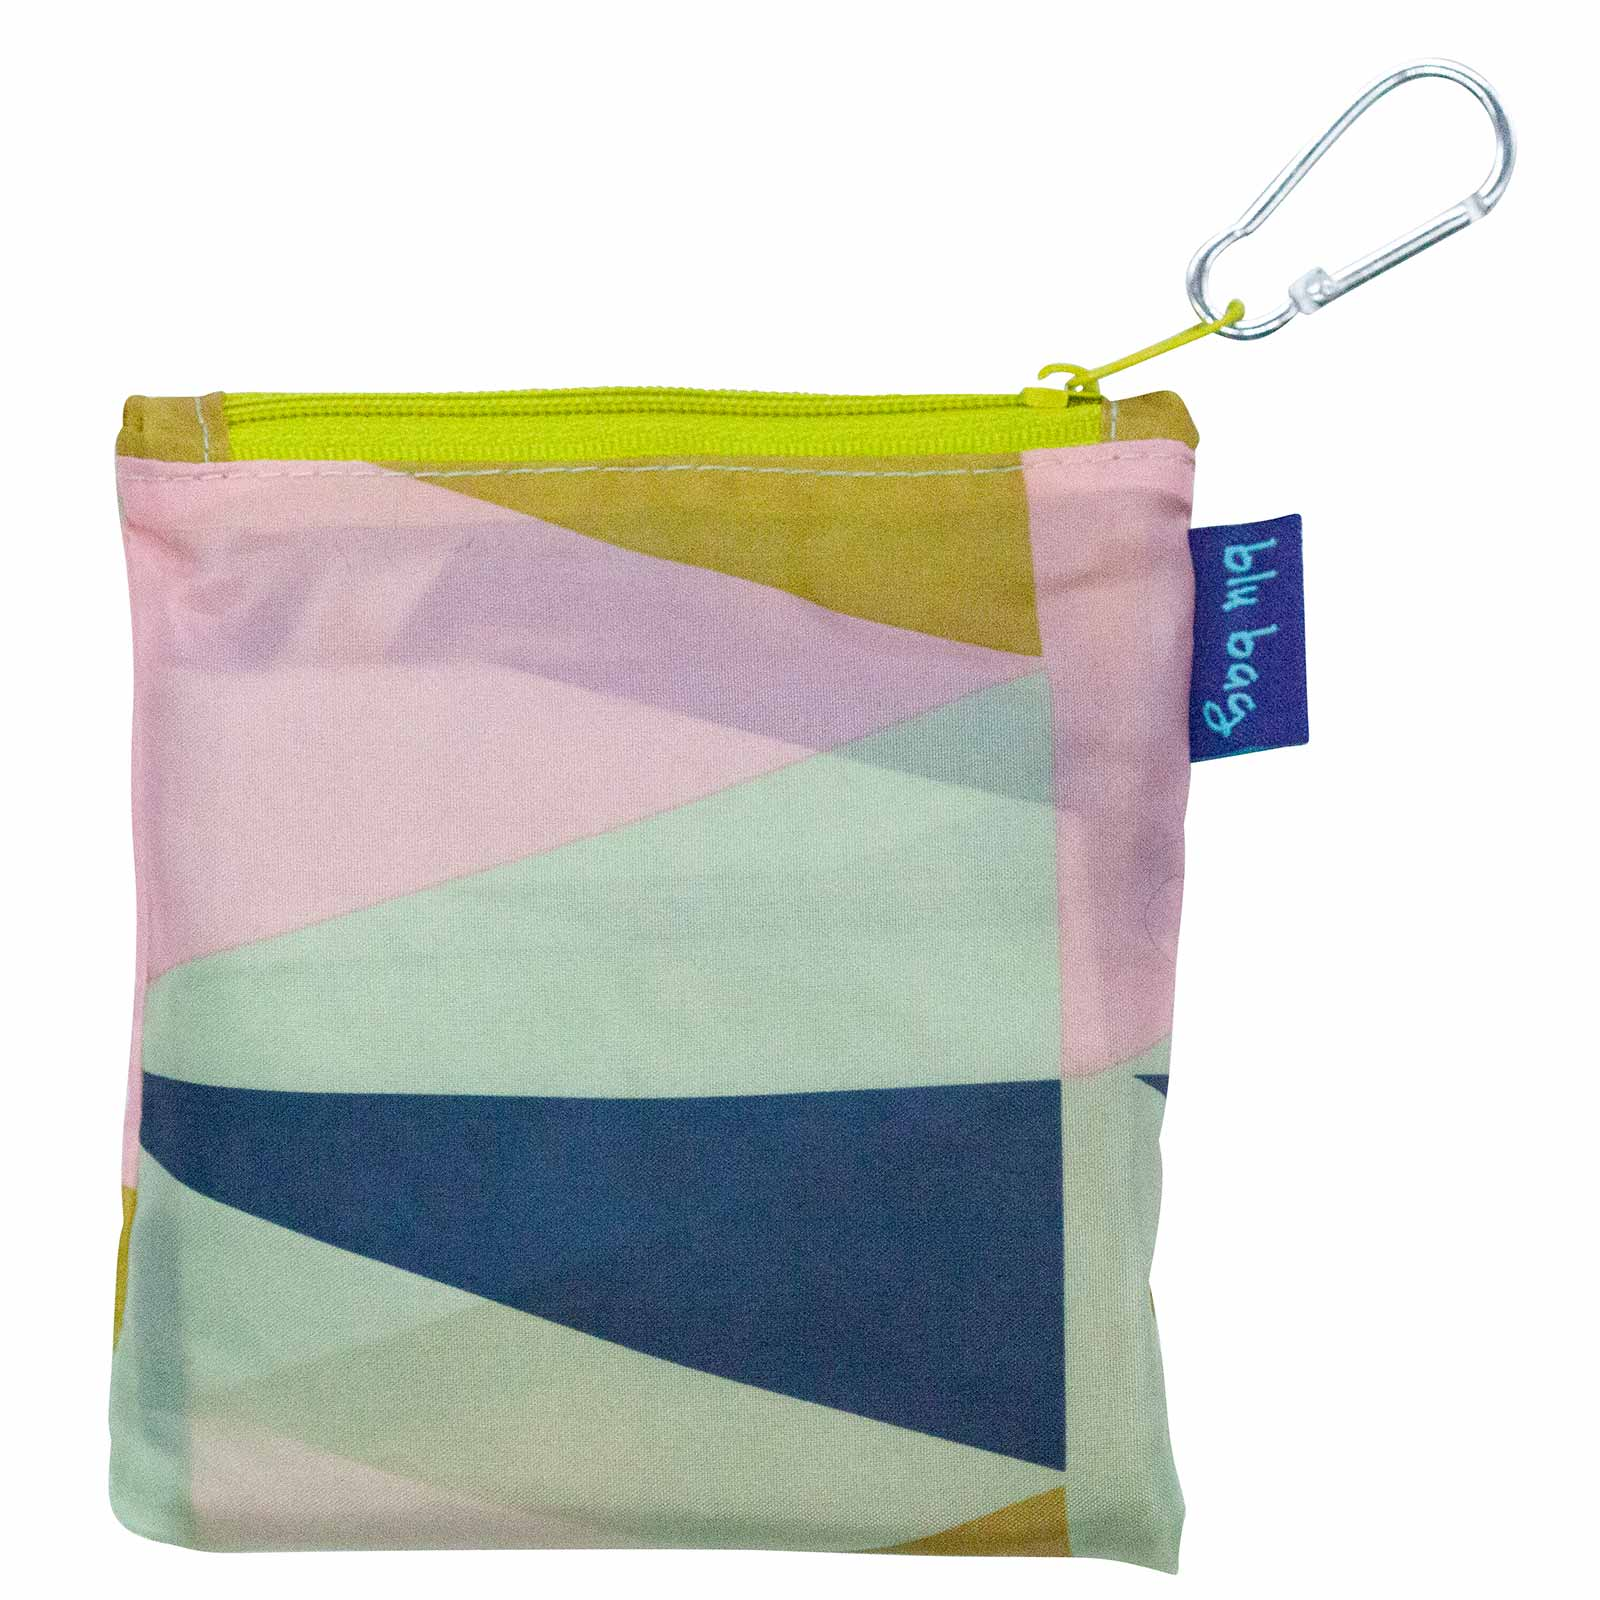 Zuri Blu Bag Reusable Shopping Tote - Machine Washable